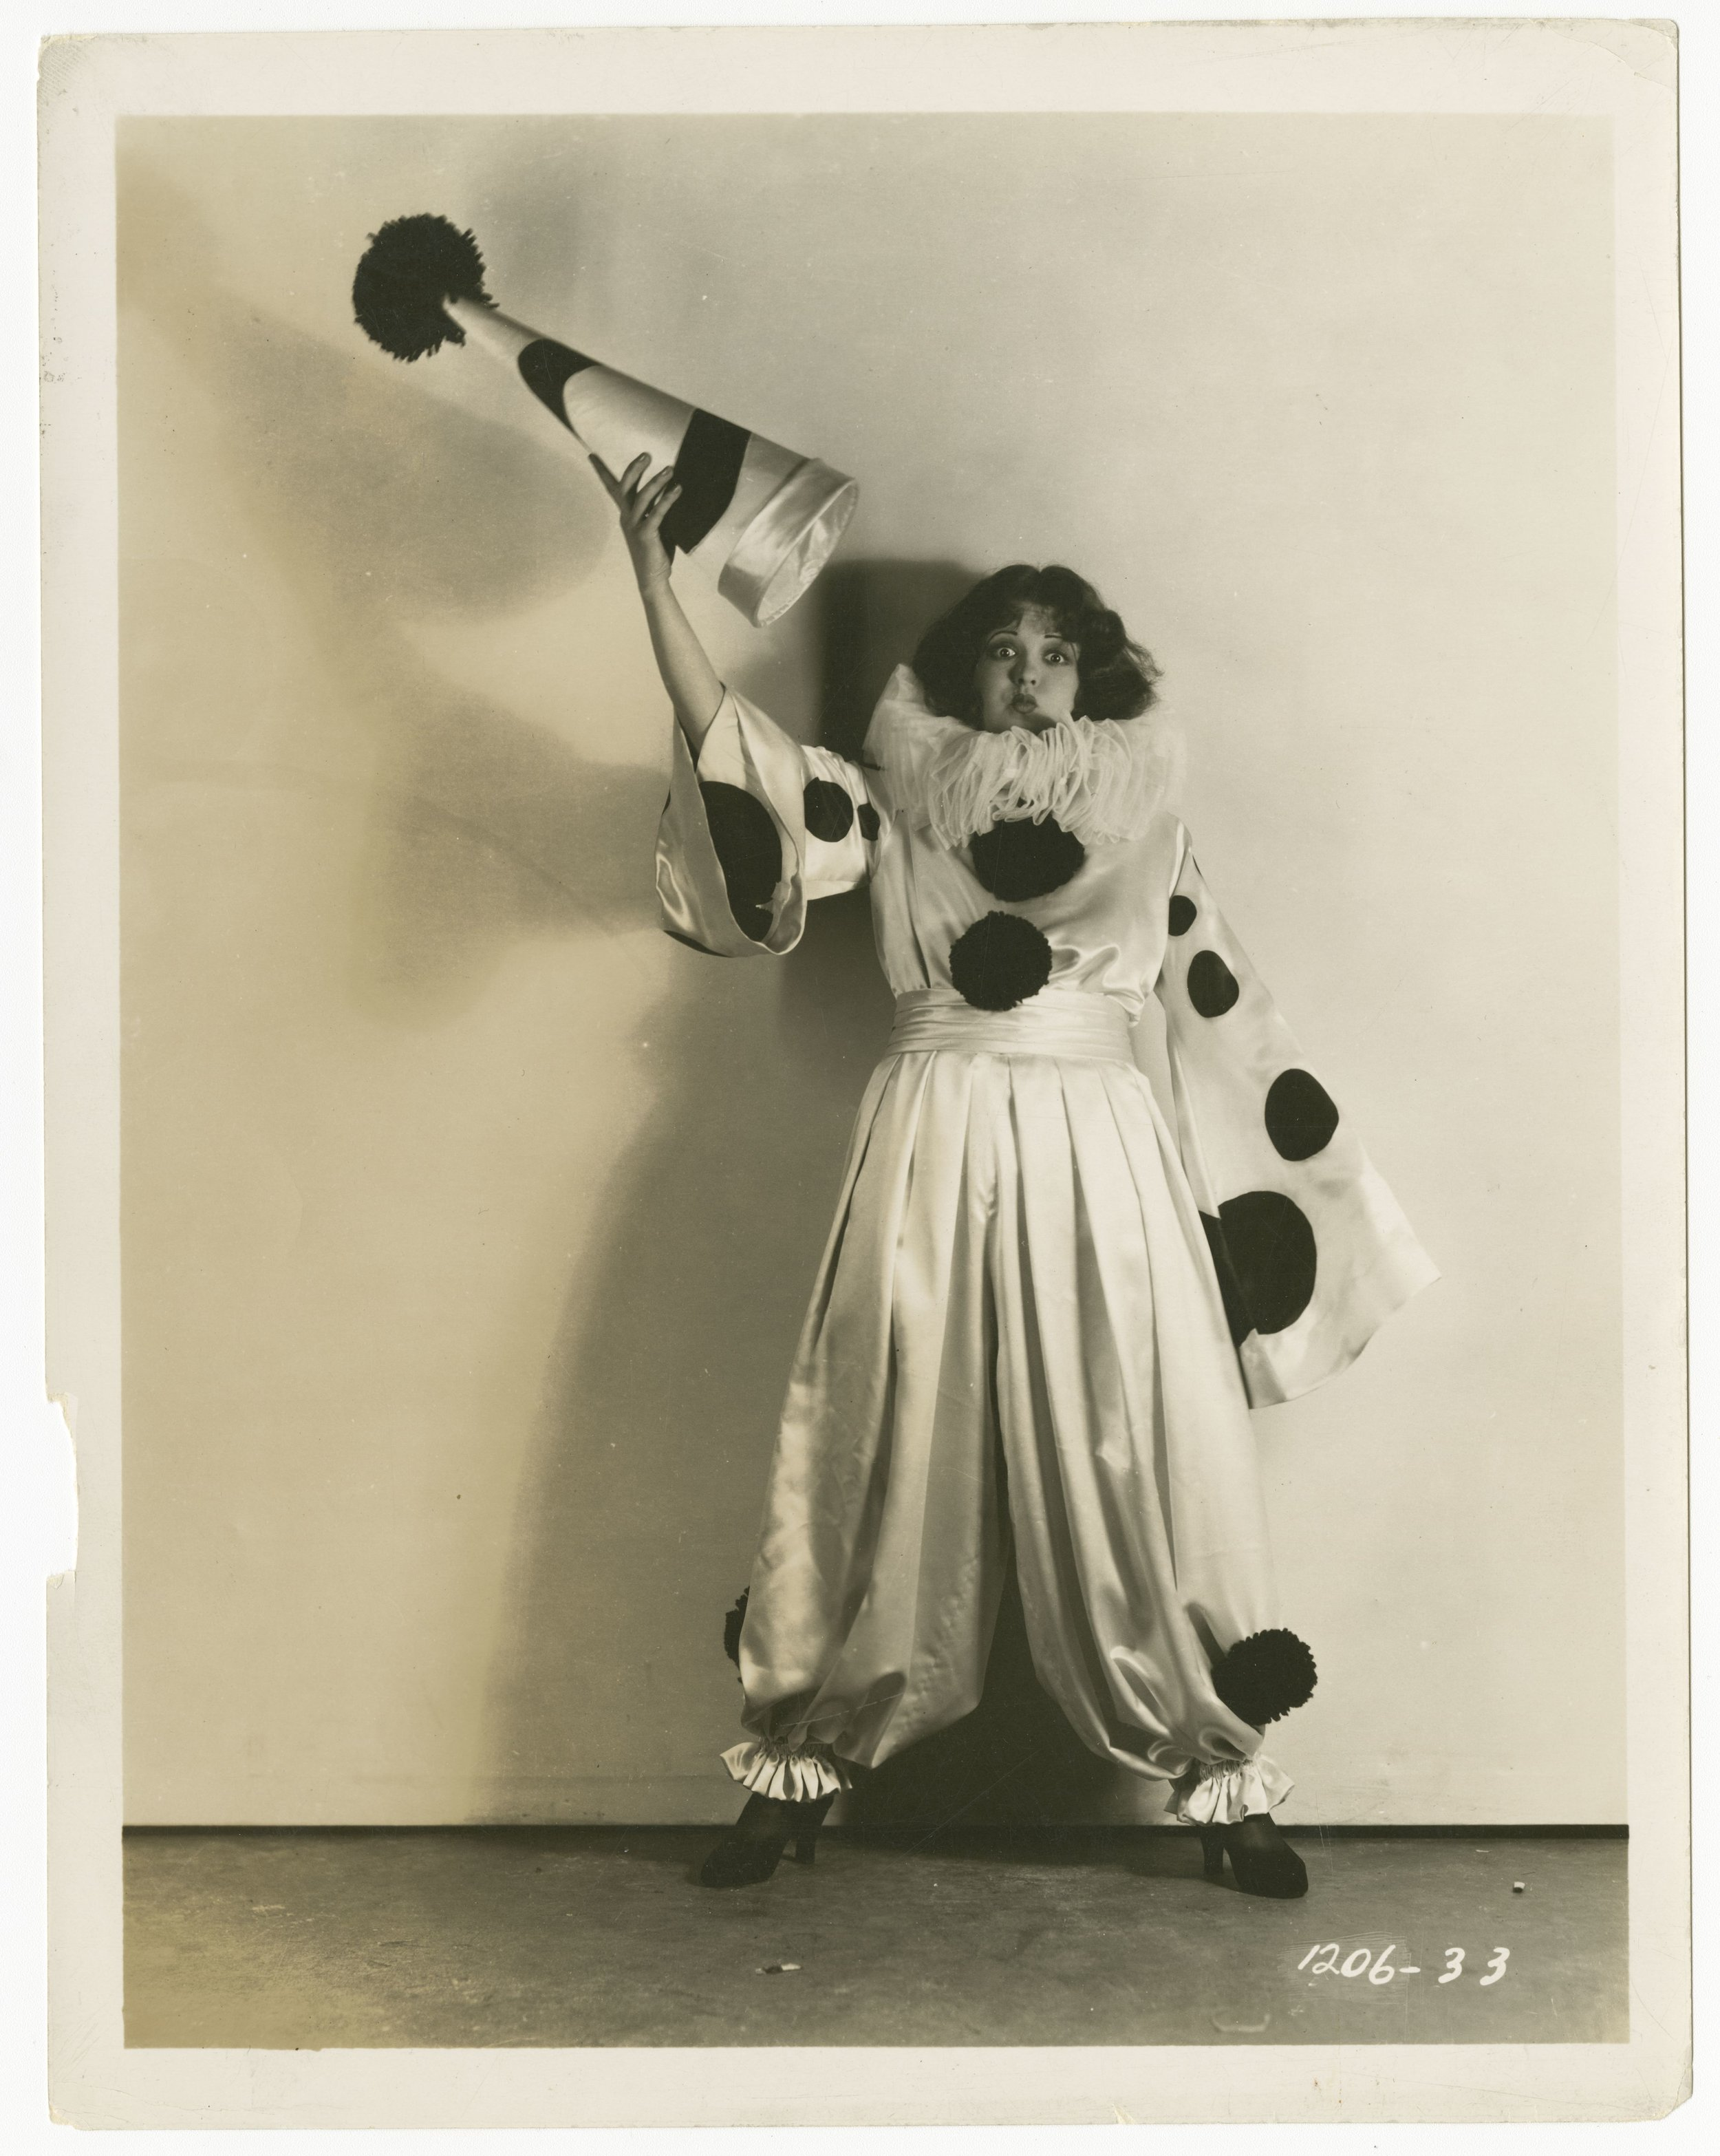 Clara Bow in Dangerous Curves (1929). Photograph by George Hommel. BFI National Archive